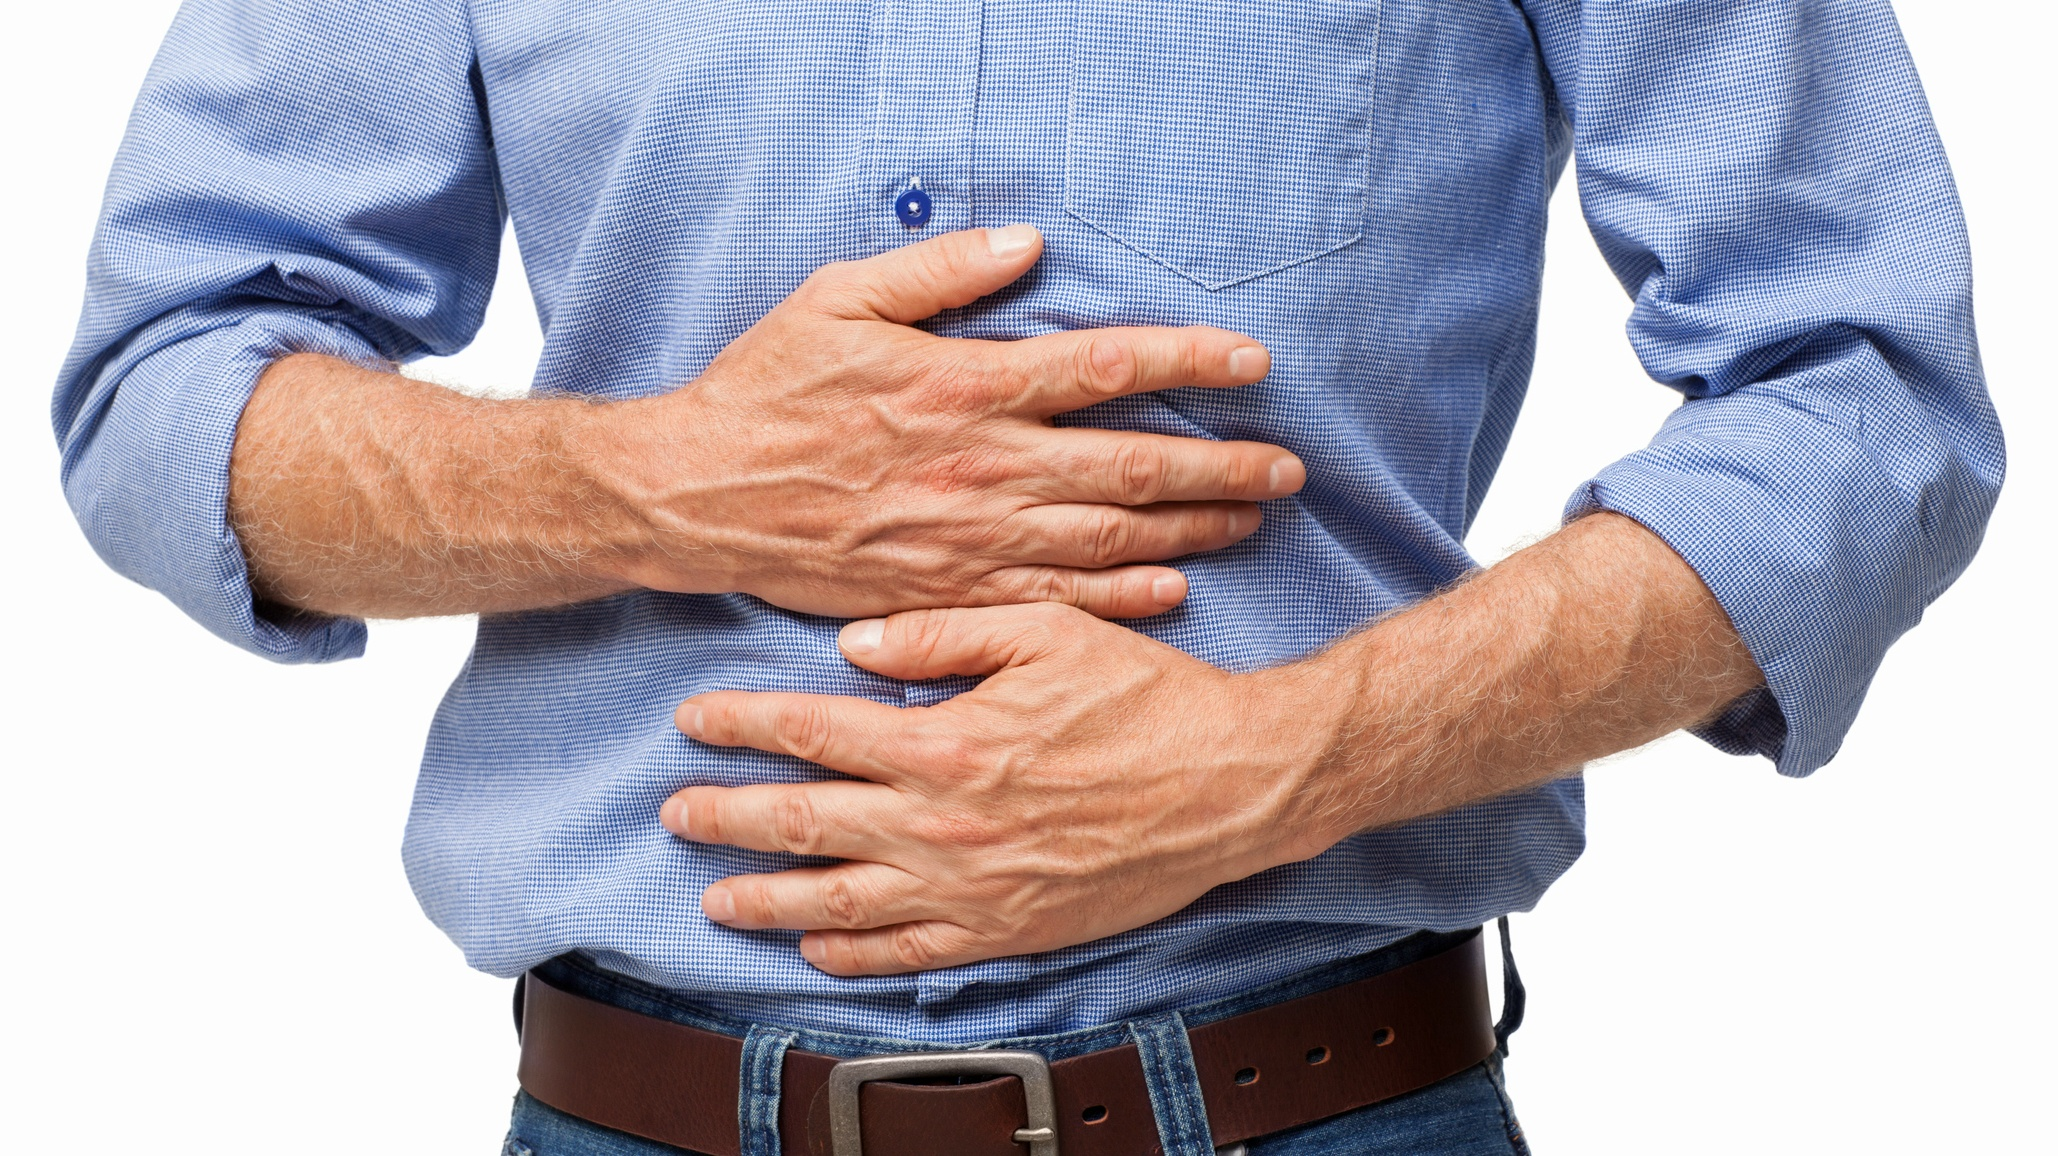 GastroPanel diagnoses Helicobacter pylori infection and atrophic gastritis, the two prime risk factors of gastric cancer.